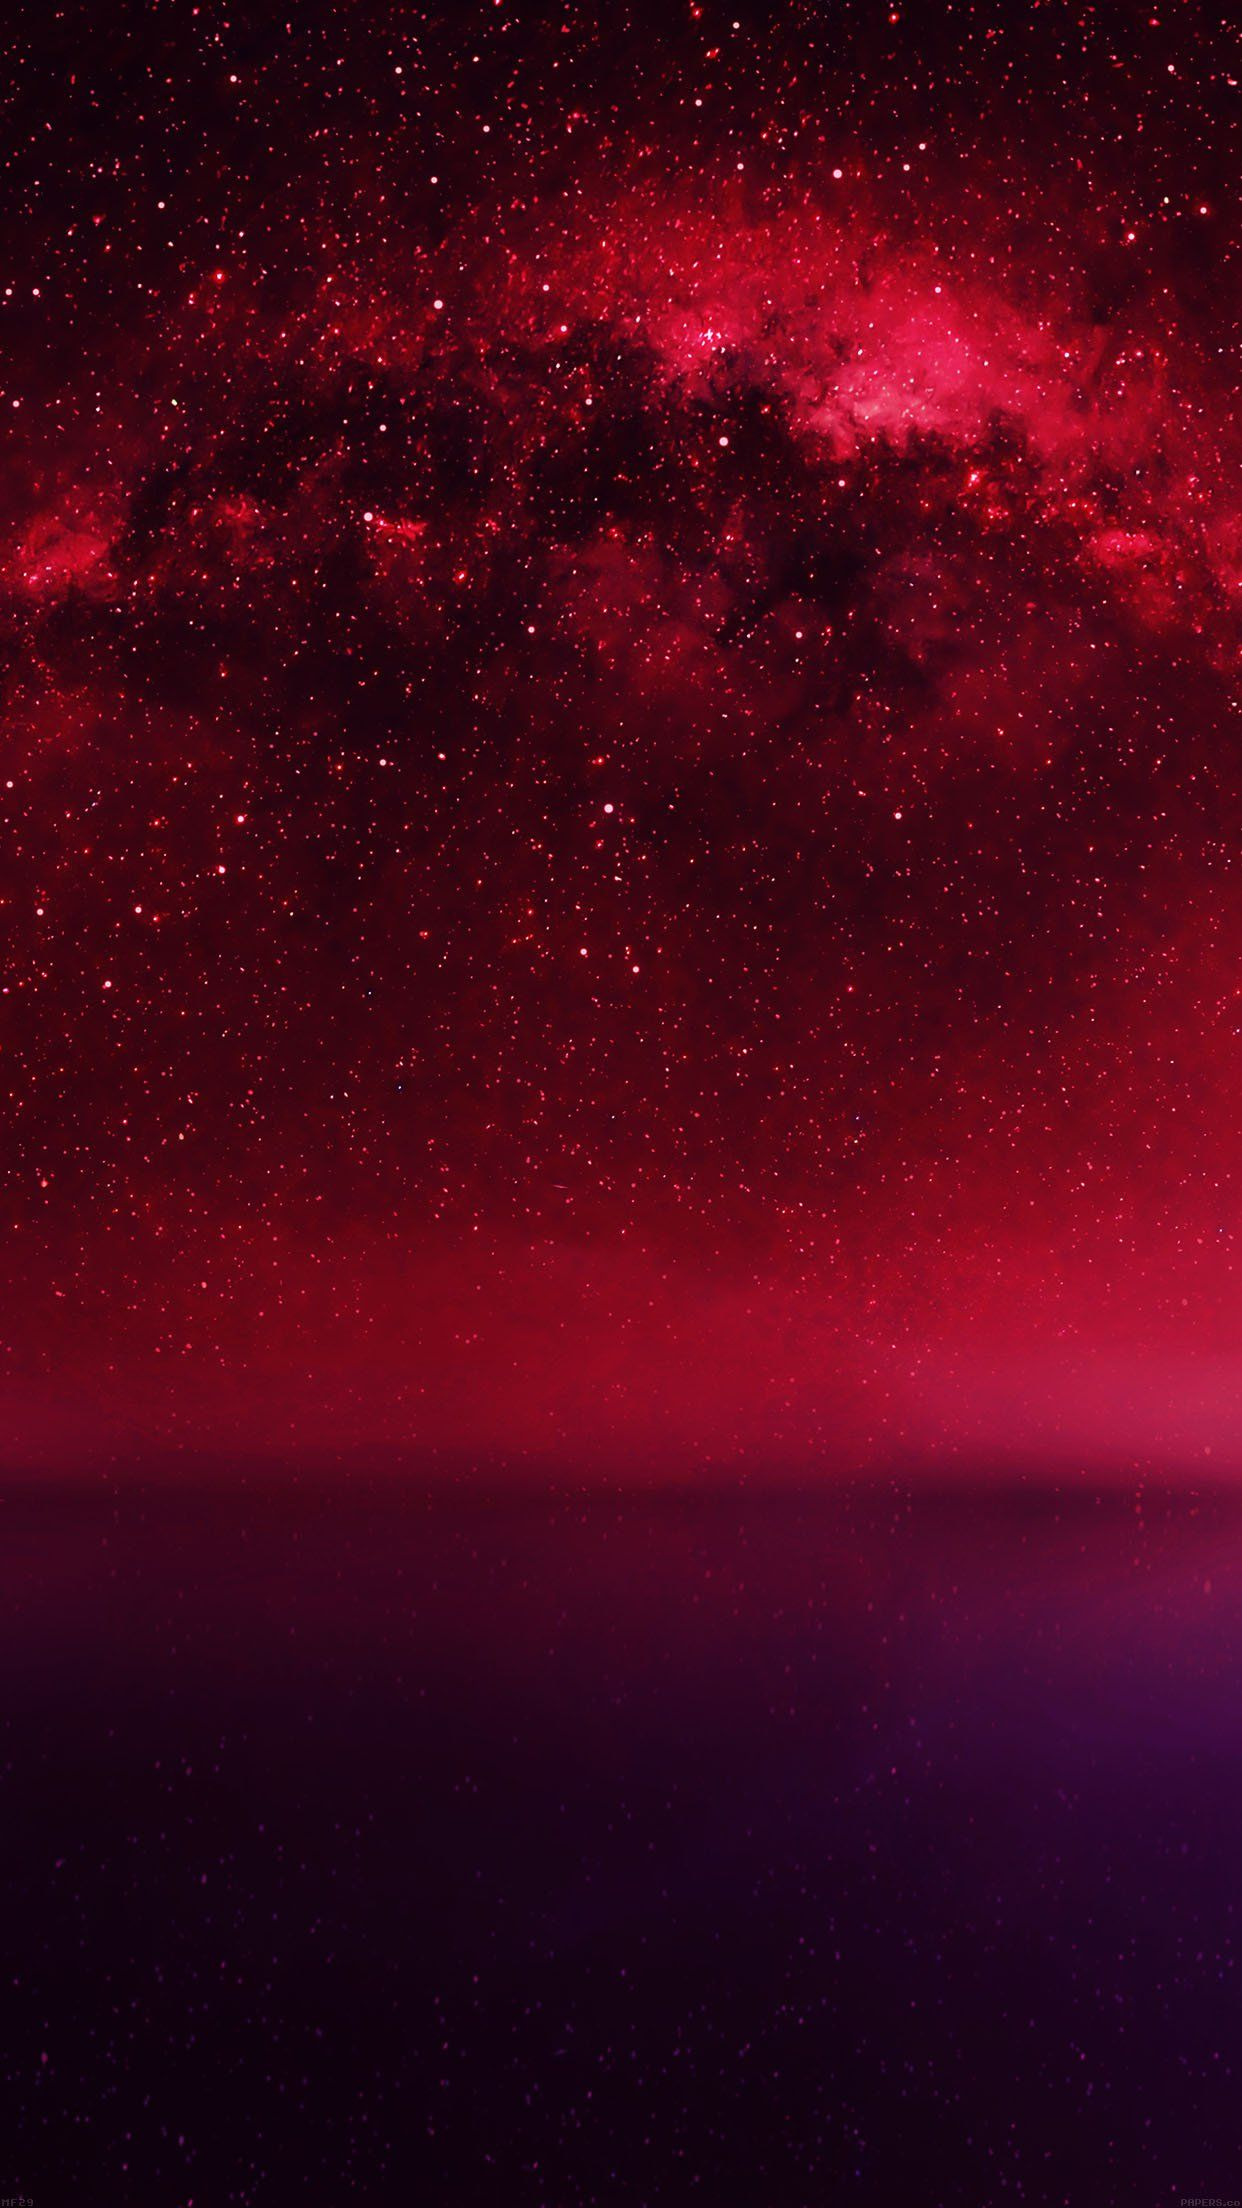 Cosmos Red Night Live Lake Space Starry fondo de pantalla de Android - Android